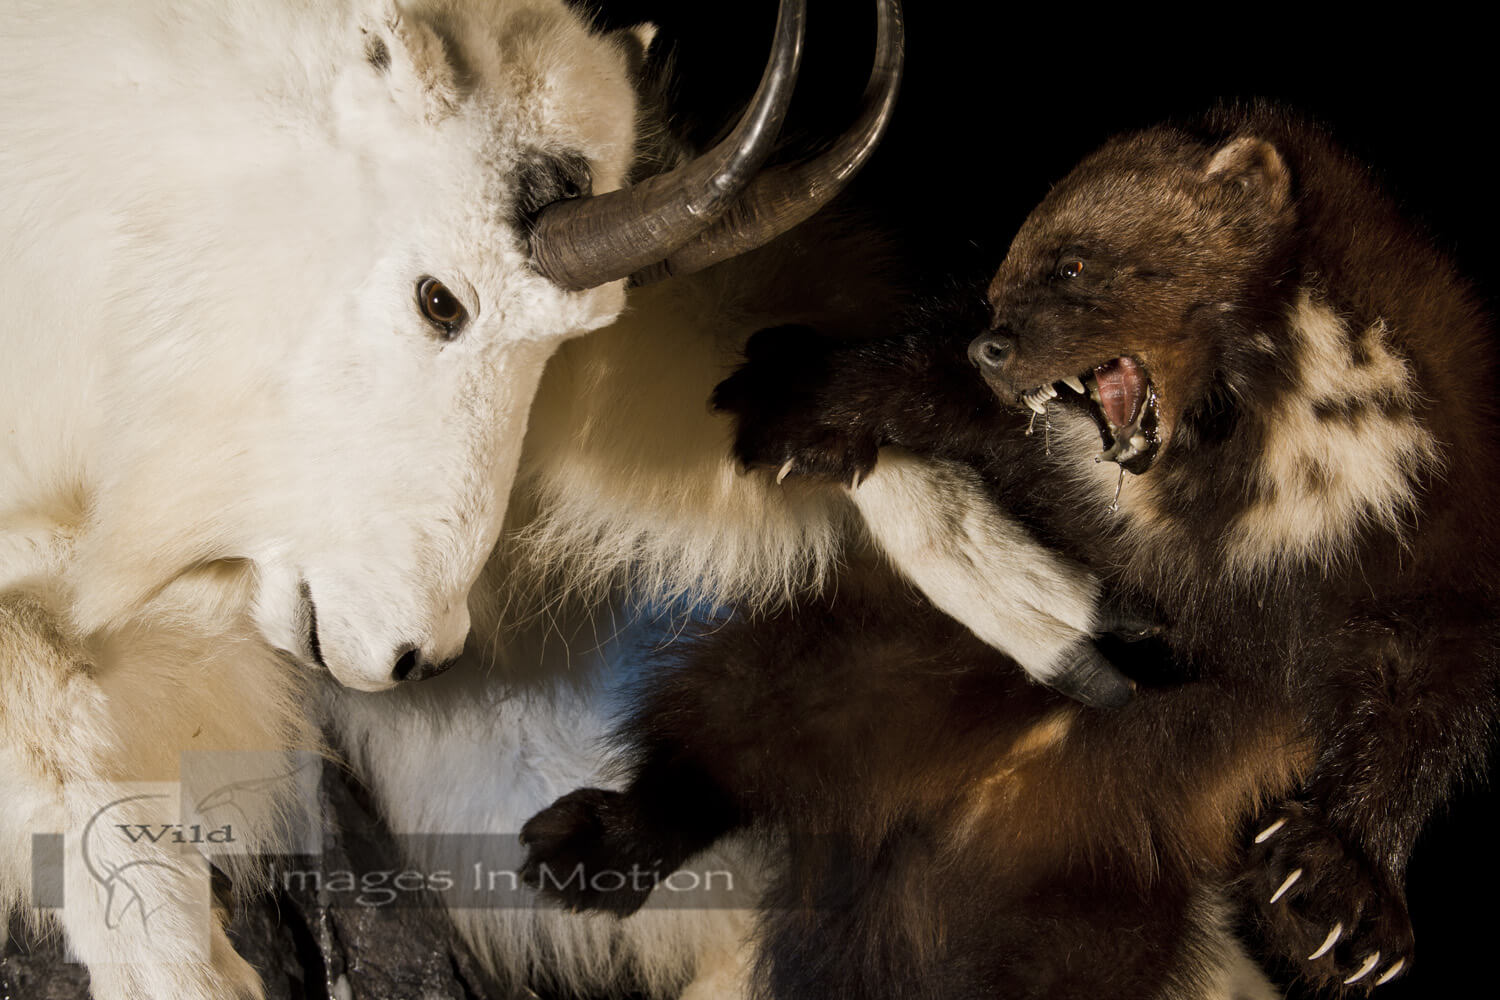 wolverine-attacking-mountain-goat